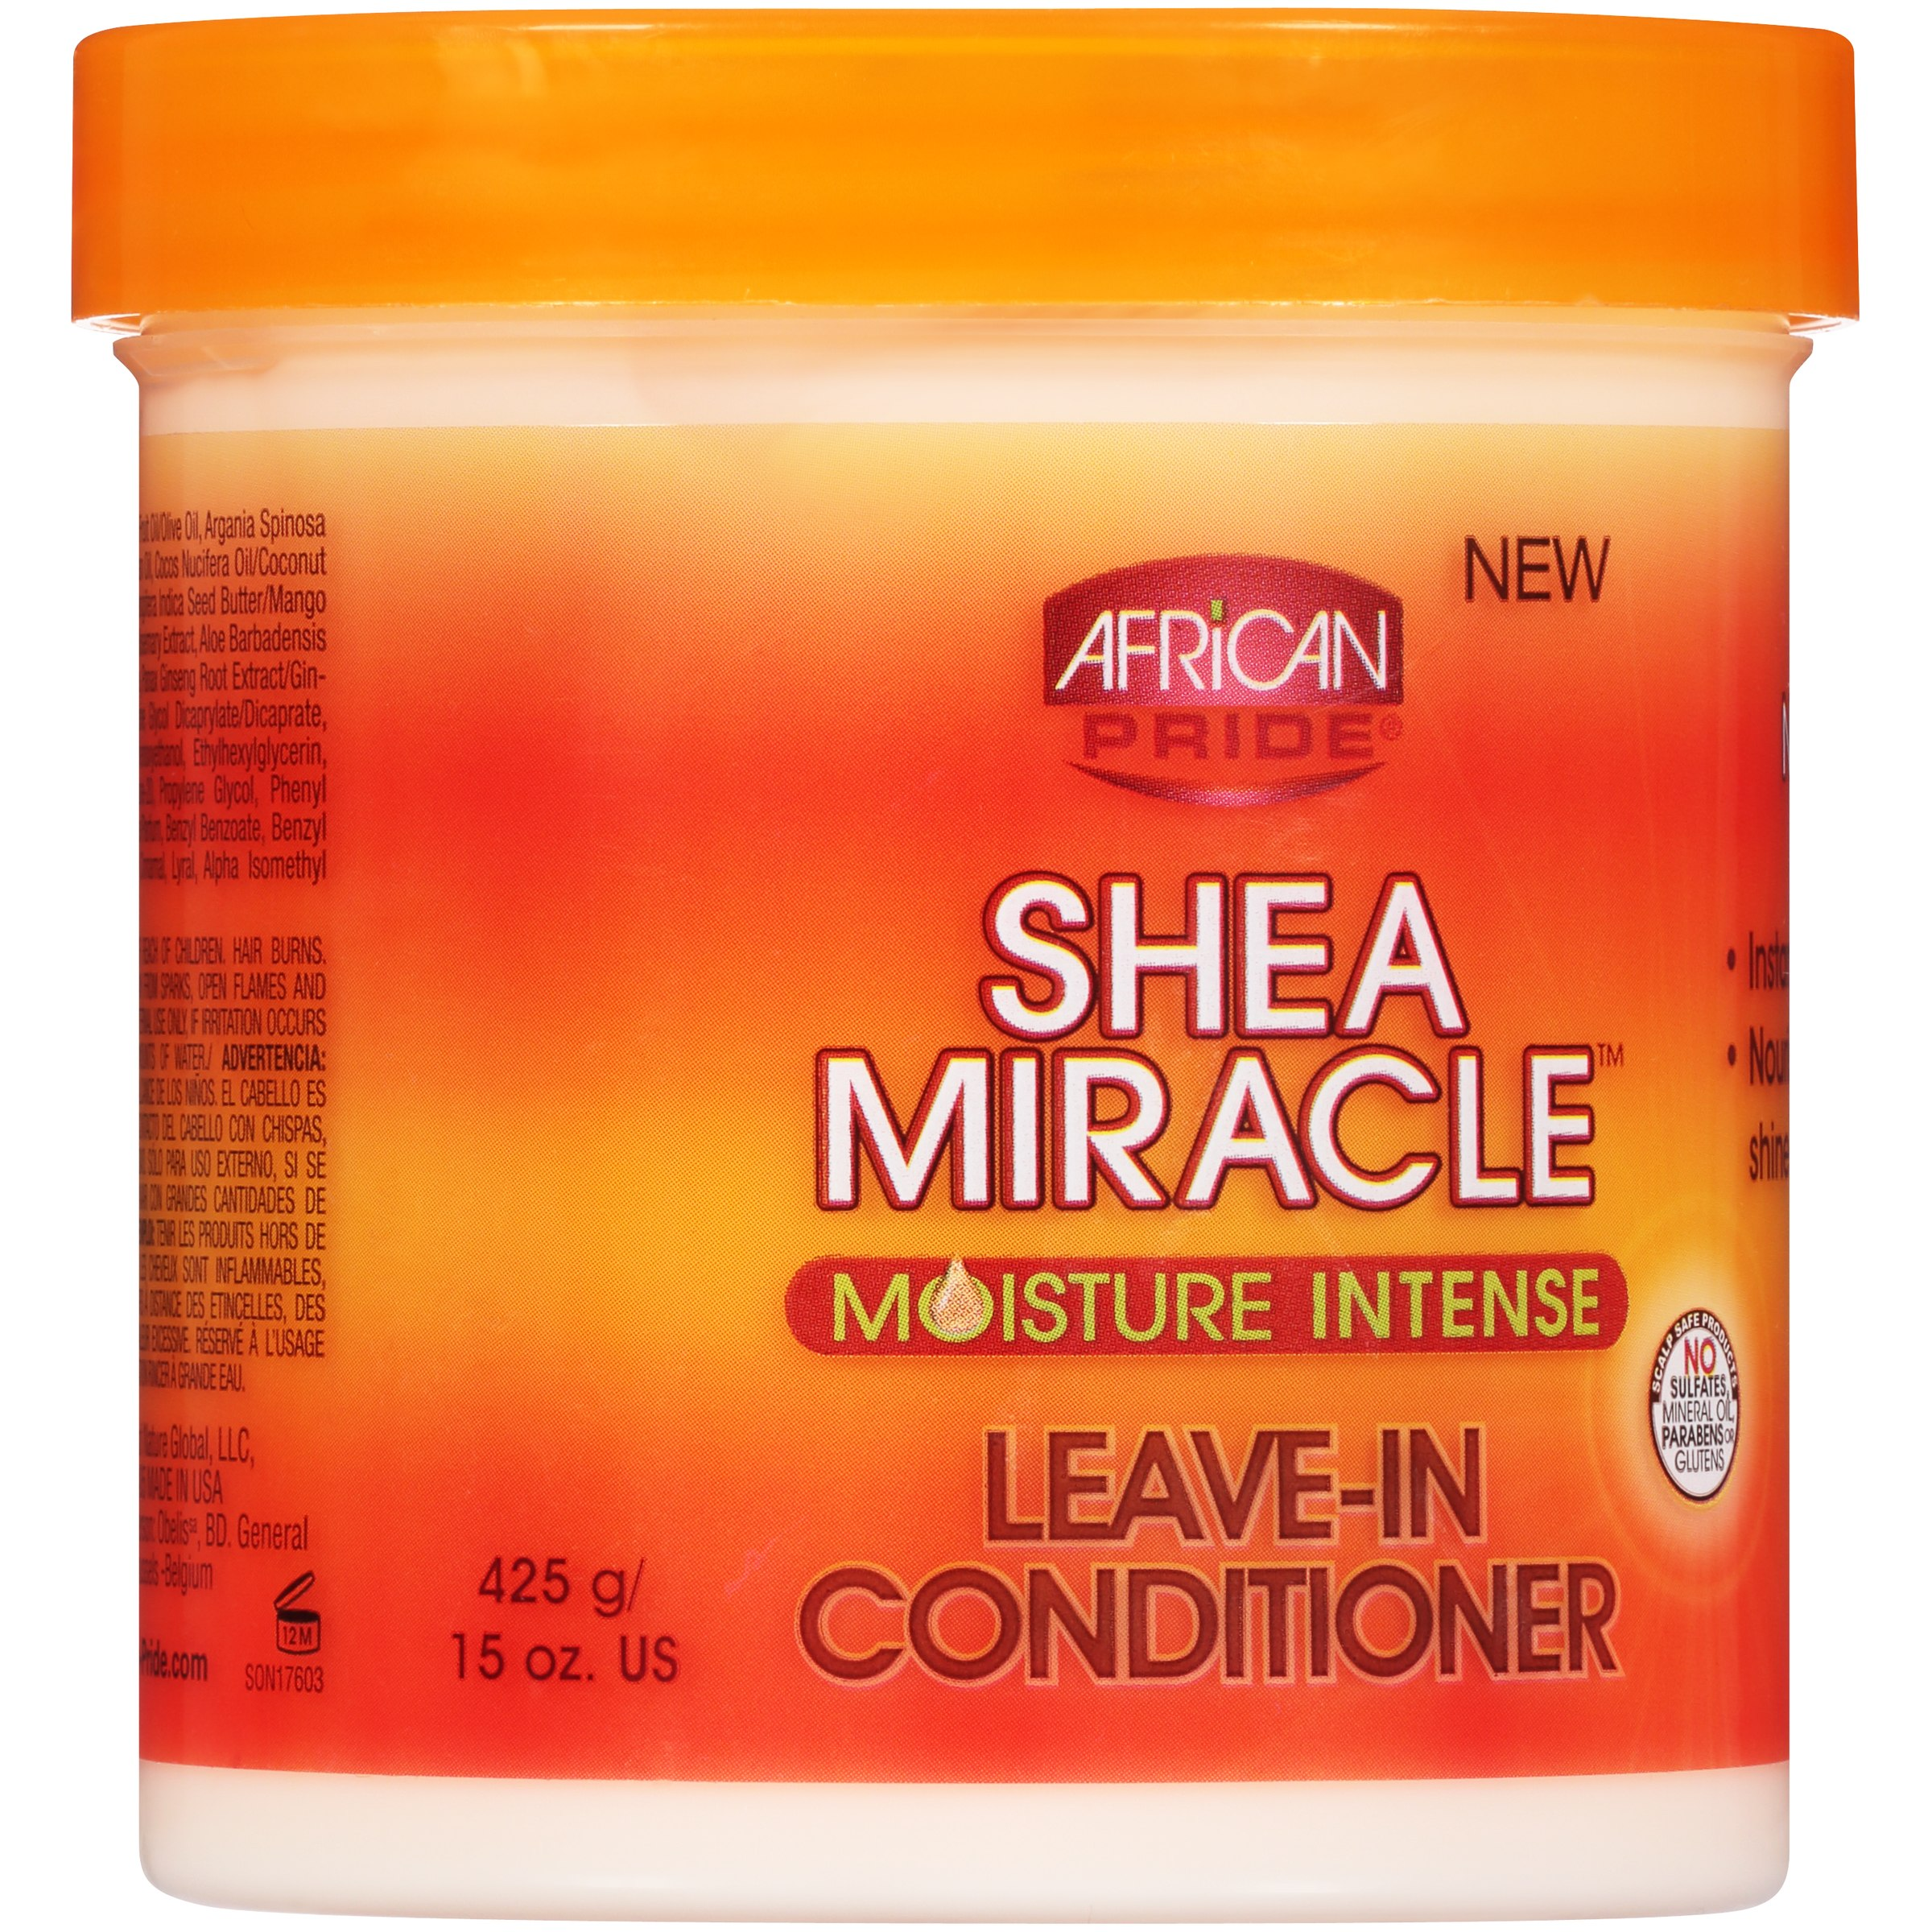 African Pride Shea Miracle Moisture Intense Leave-In Conditioner 15 oz. Jar